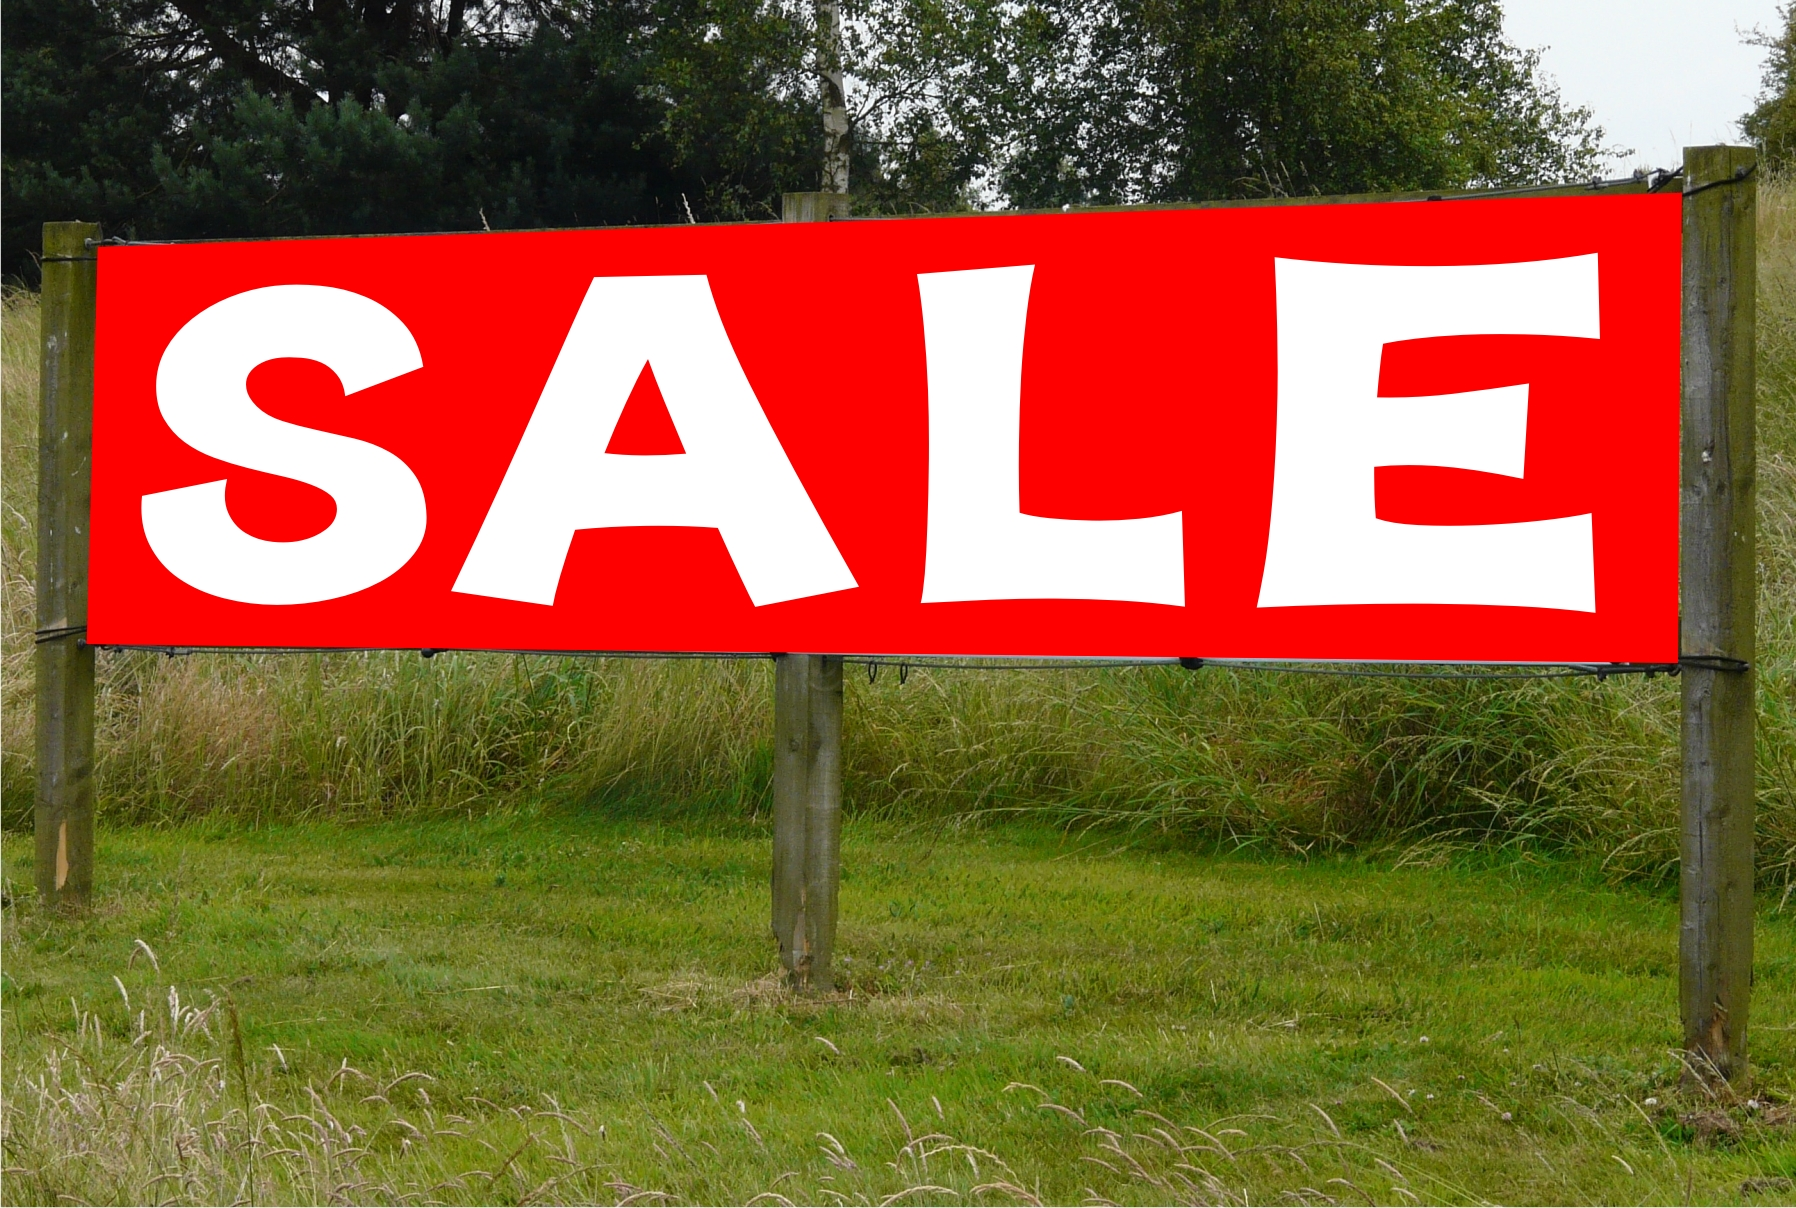 Sale pvc banner promtional item M Signs